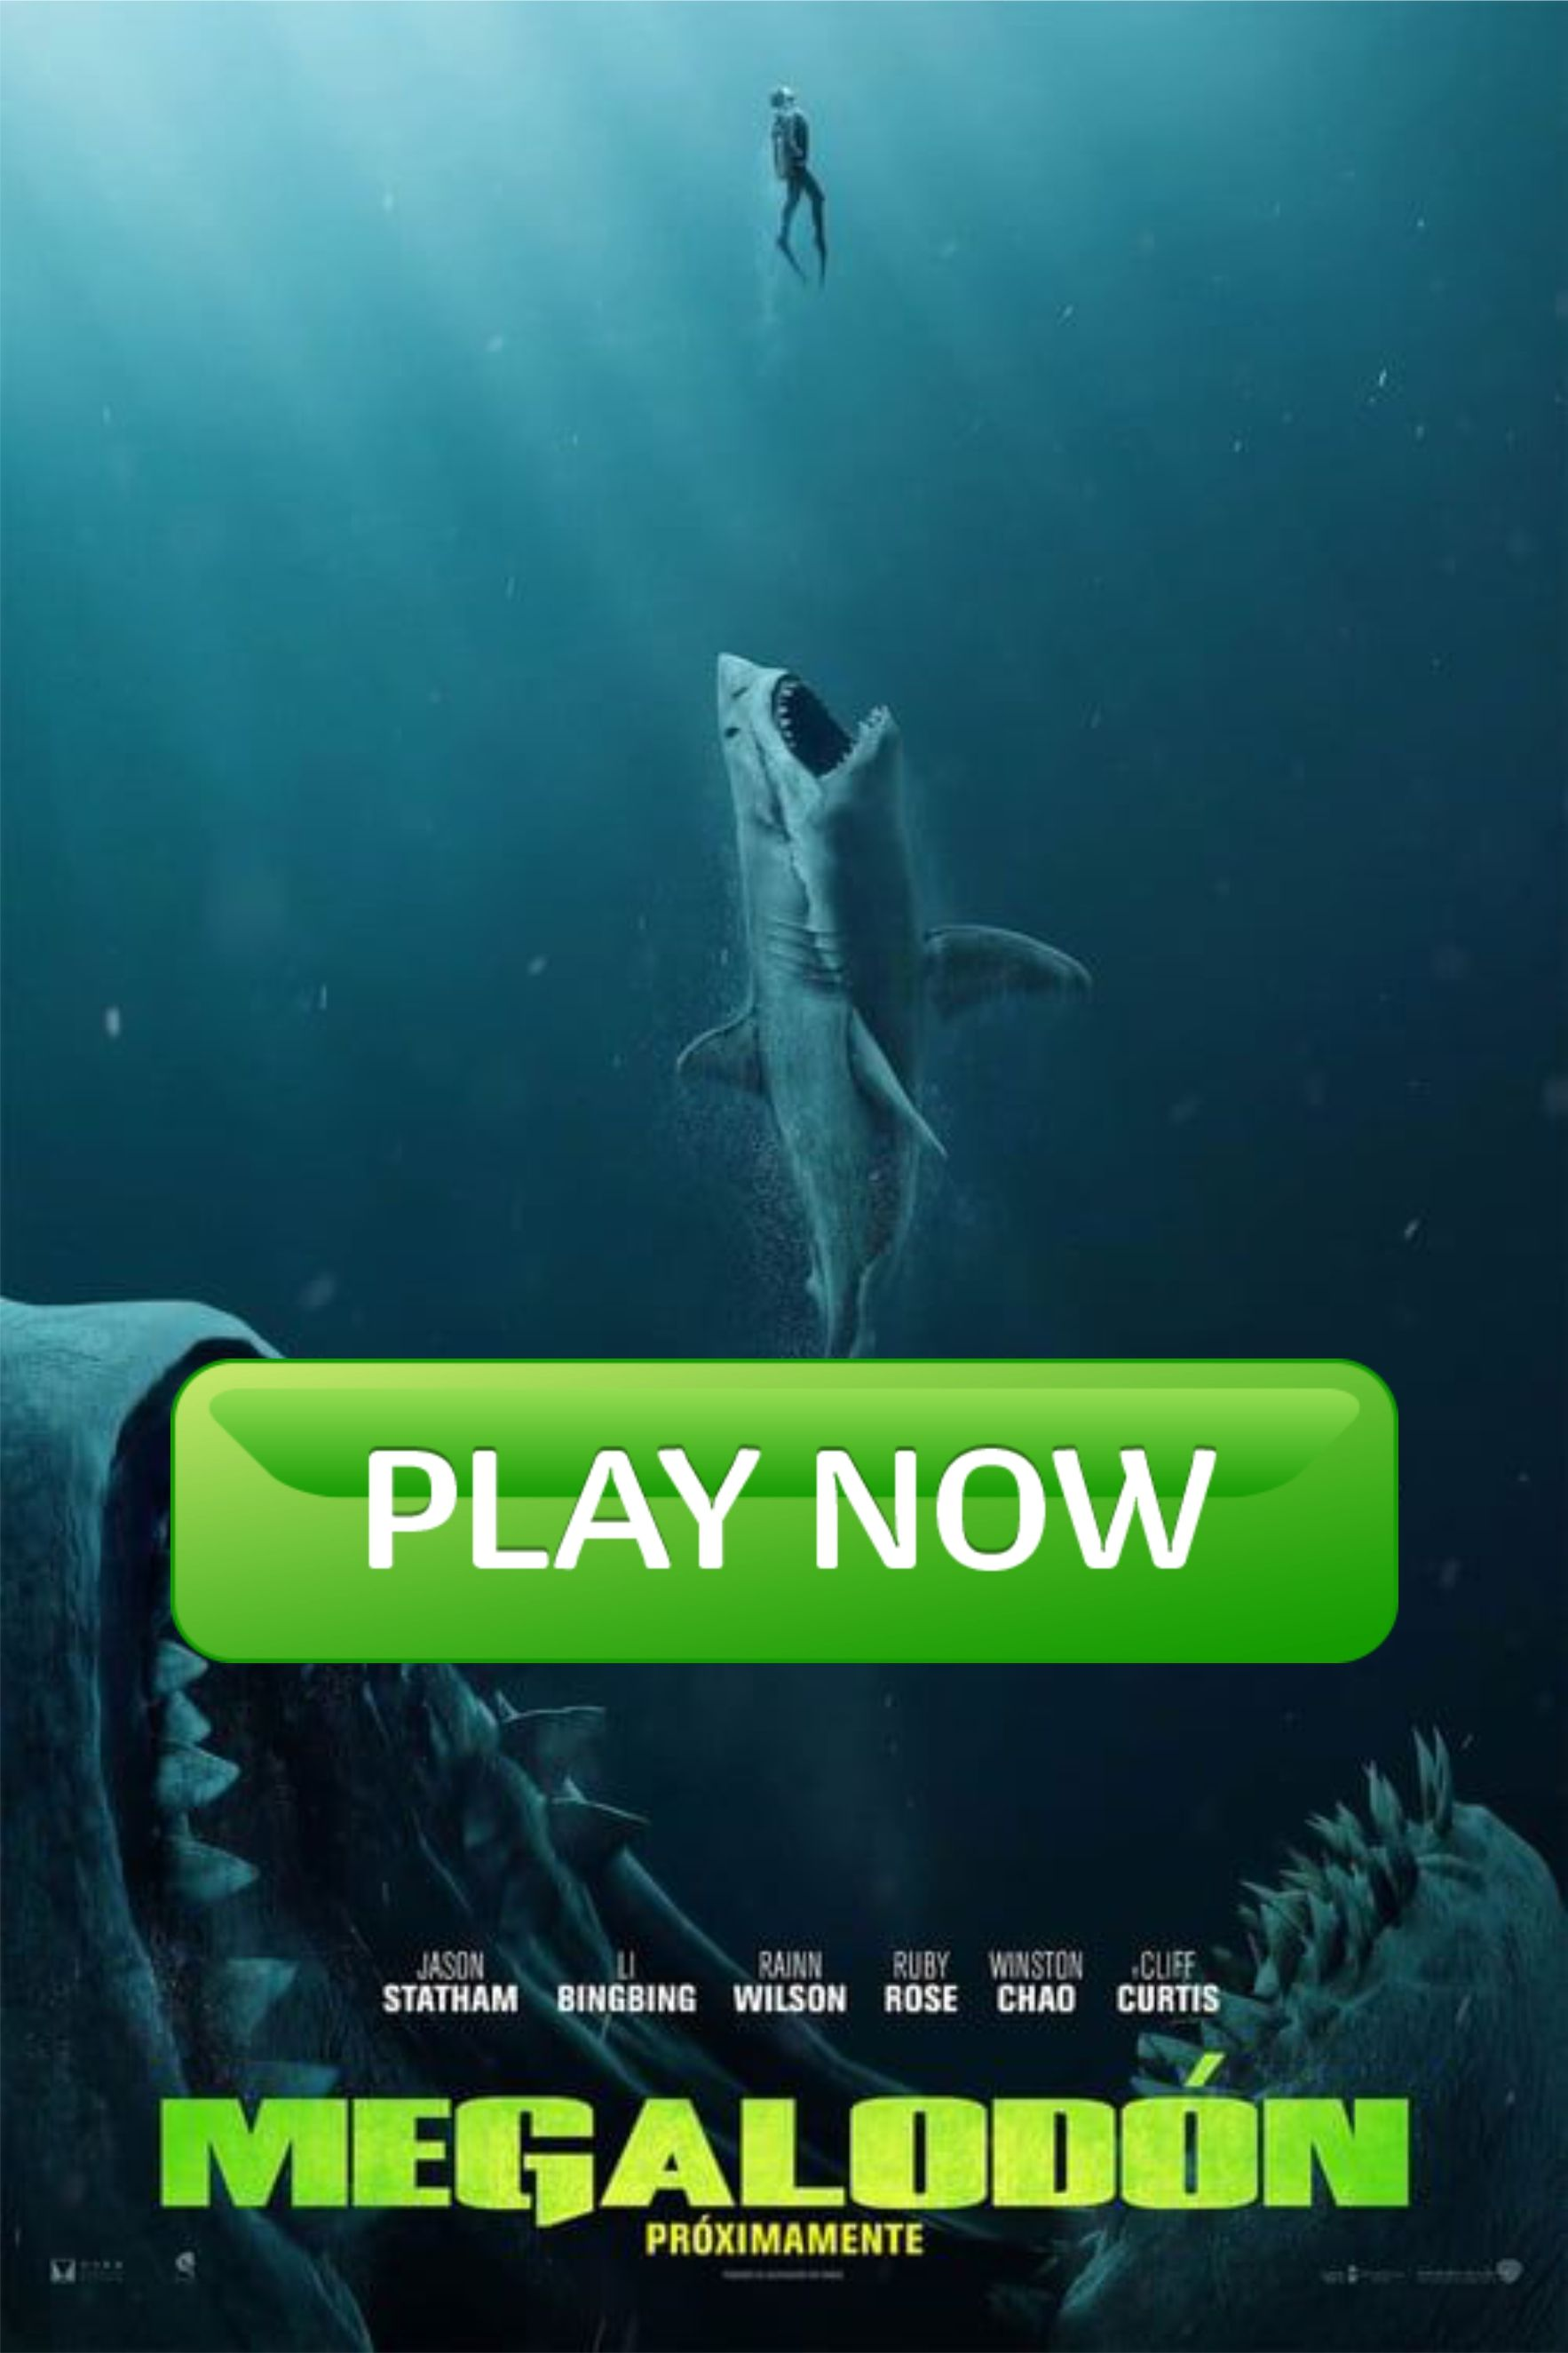 Ver Megalodon 2018 Online Latino Hd Full Movies Free Movies Online Marianas Trench